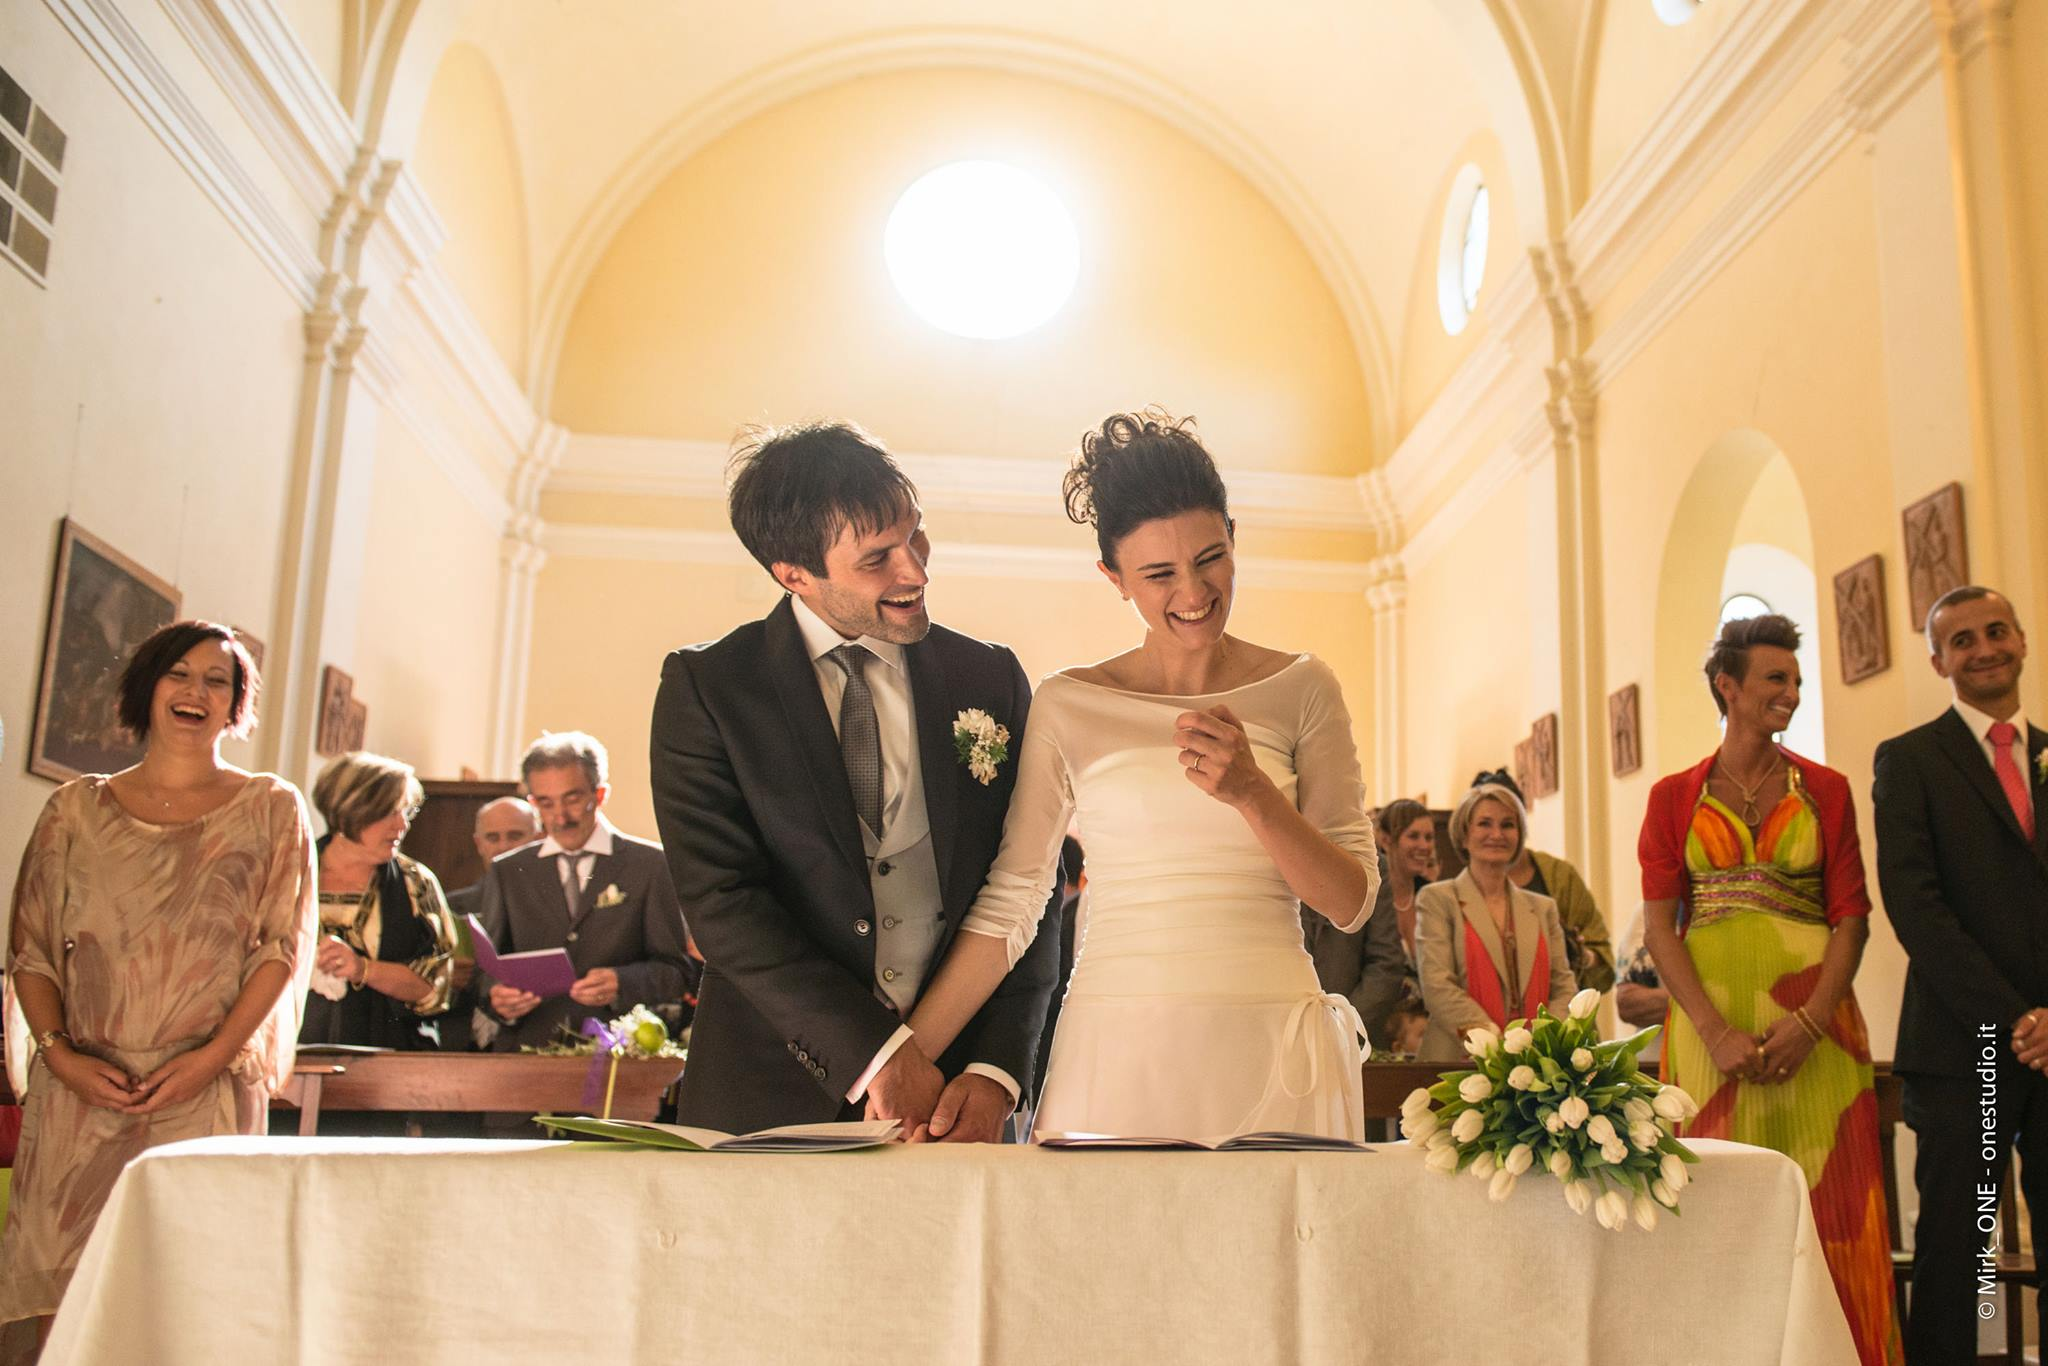 http://lnx.mirkone.it/wp-content/uploads/2015/07/mirk_ONE-fotografo-matrimonio-00867.jpg